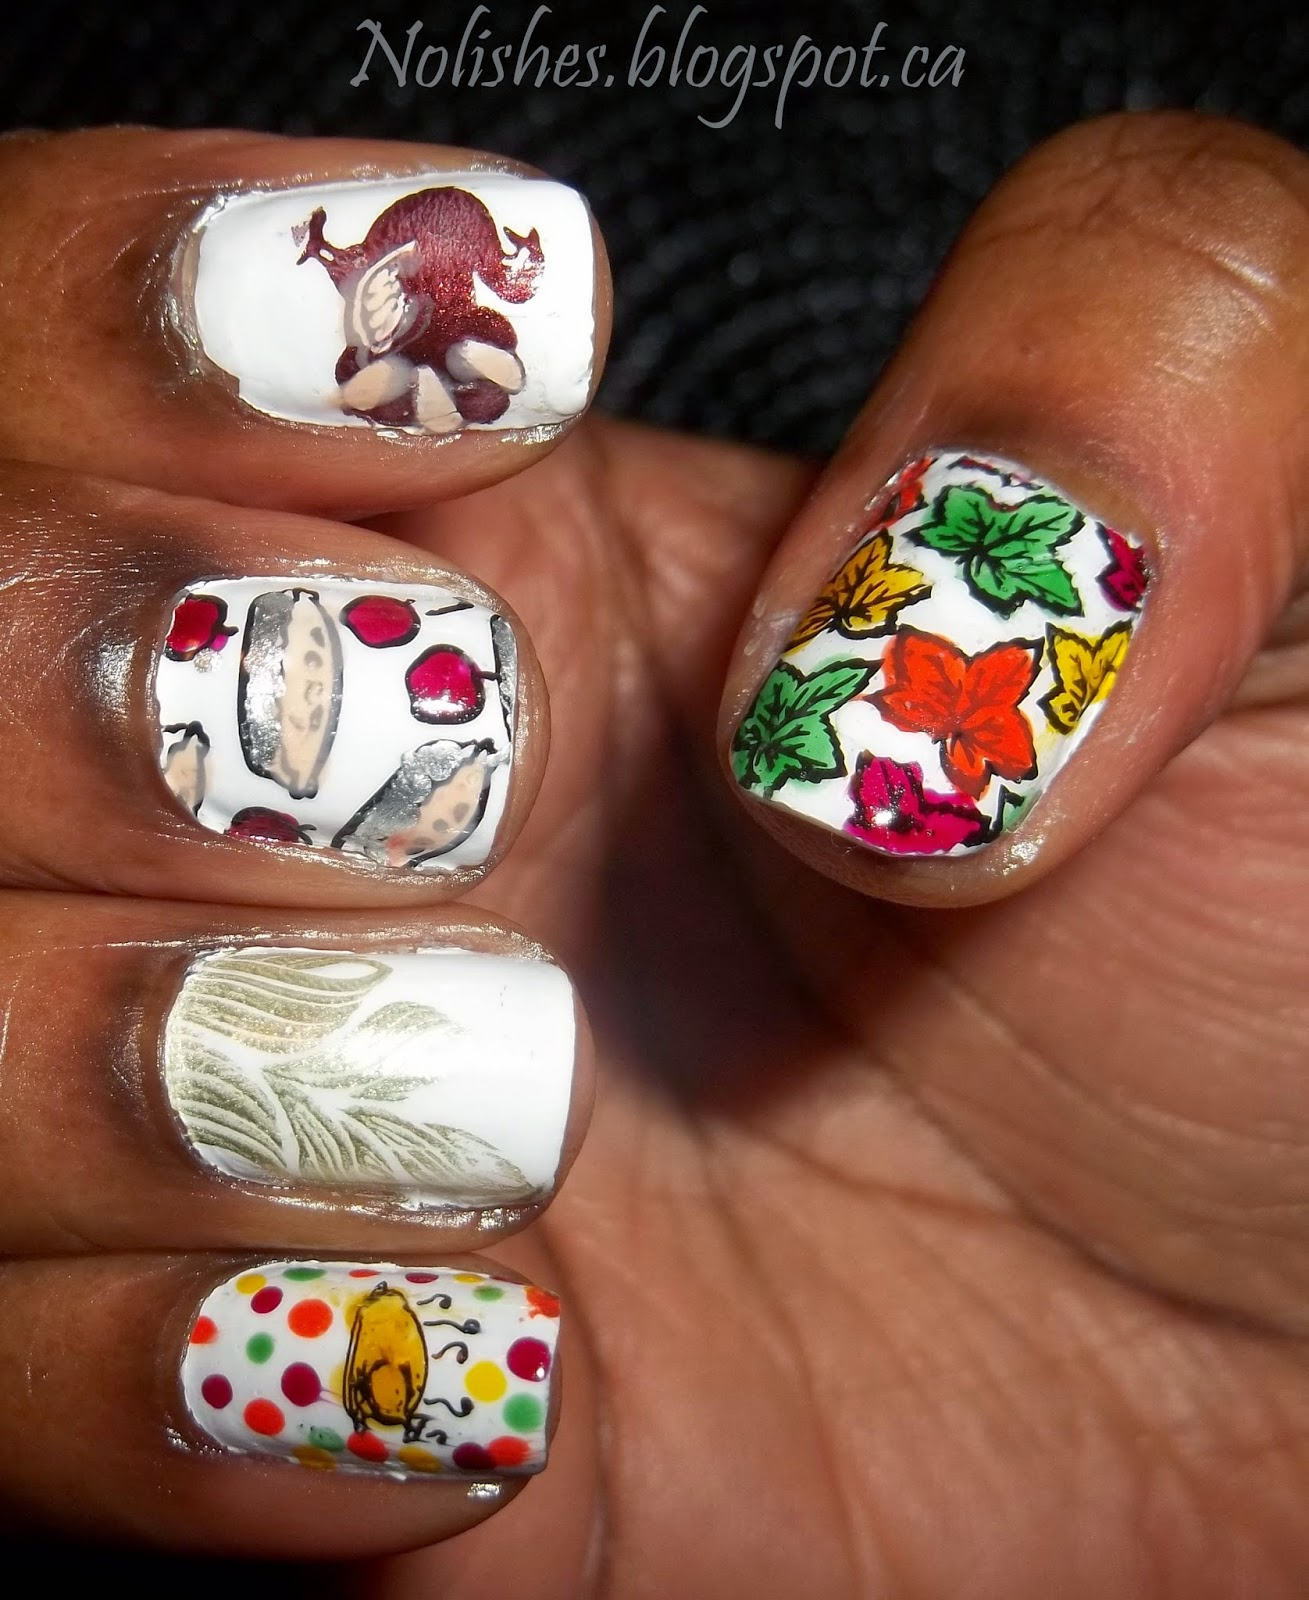 Thanksgiving Themed Skittles Nail Stamping Manicure Using Konad Special Polish in Black, China Glaze 'White on White', China Glaze 'Ravishing, Dahling', Essie 'Capri', Nfu Oh Jelly Syrup Series polishes NFU JS20, NFU JS34, and NFU JS39, Sally Hansen Color Foil 'Yellow Gold', Sally Hansen Insta-Dri 'Silver Sweep', OPI 'Samoan Sand', and DRK Nails 'Metallic Brown'. Stamped using Bundle Monster Plates BM-H11, BM-H13, and Winstonia Plate W119